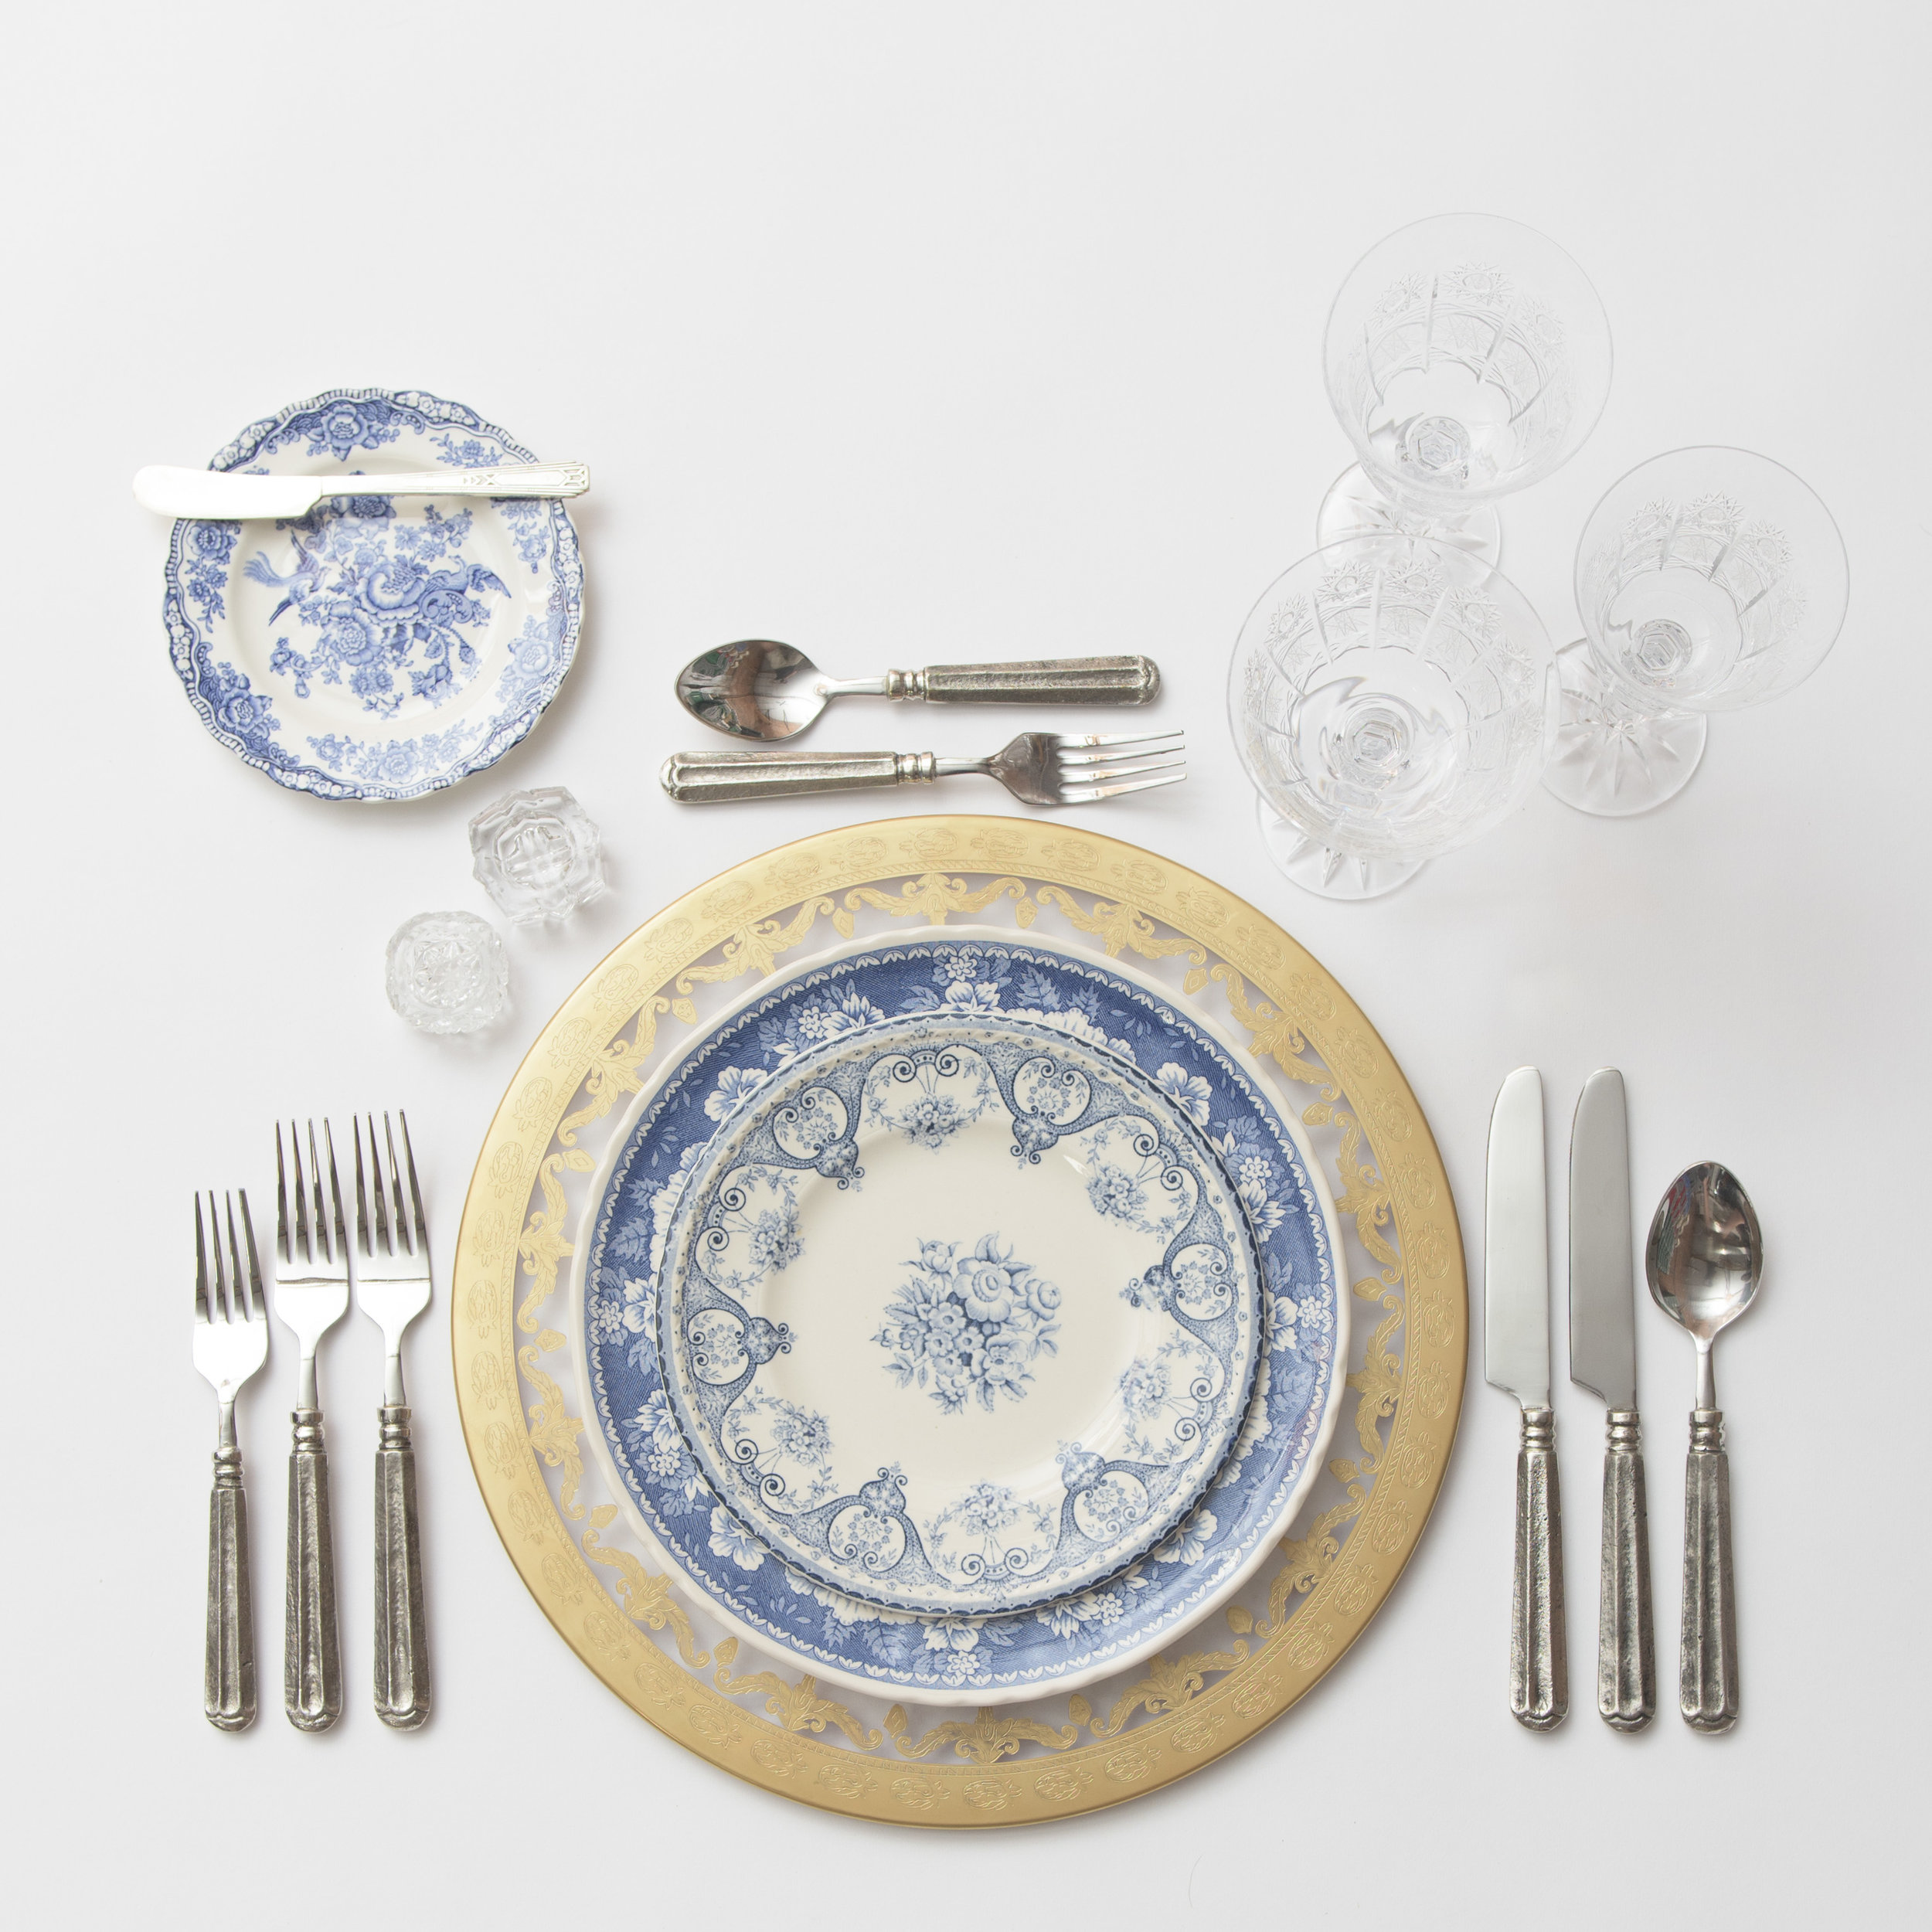 RENT: Versailles Glass Chargers in 24k Gold + Blue Garden Collection Vintage China + Tuscan Flatware in Pewter + Czech Crystal Stemware + Antique Crystal Salt Cellars